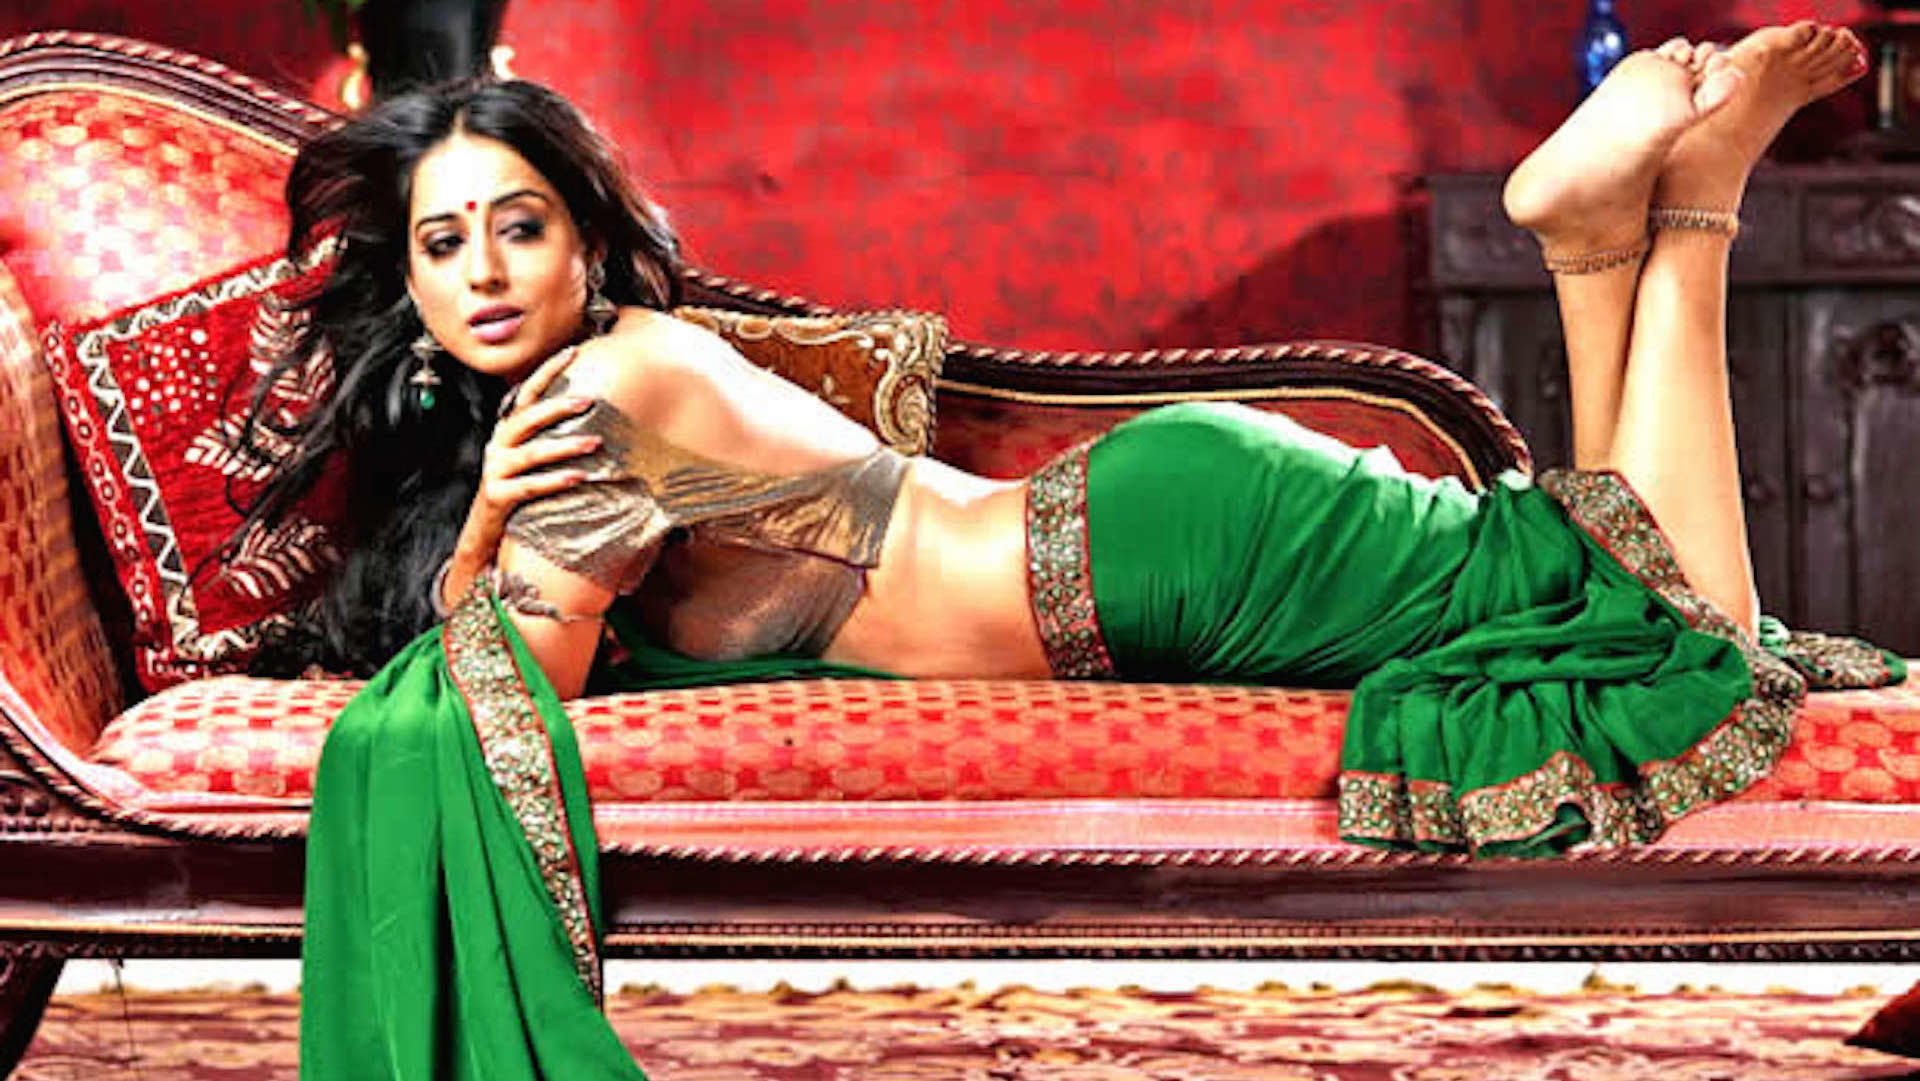 pictures of nude bollywood actress  228904